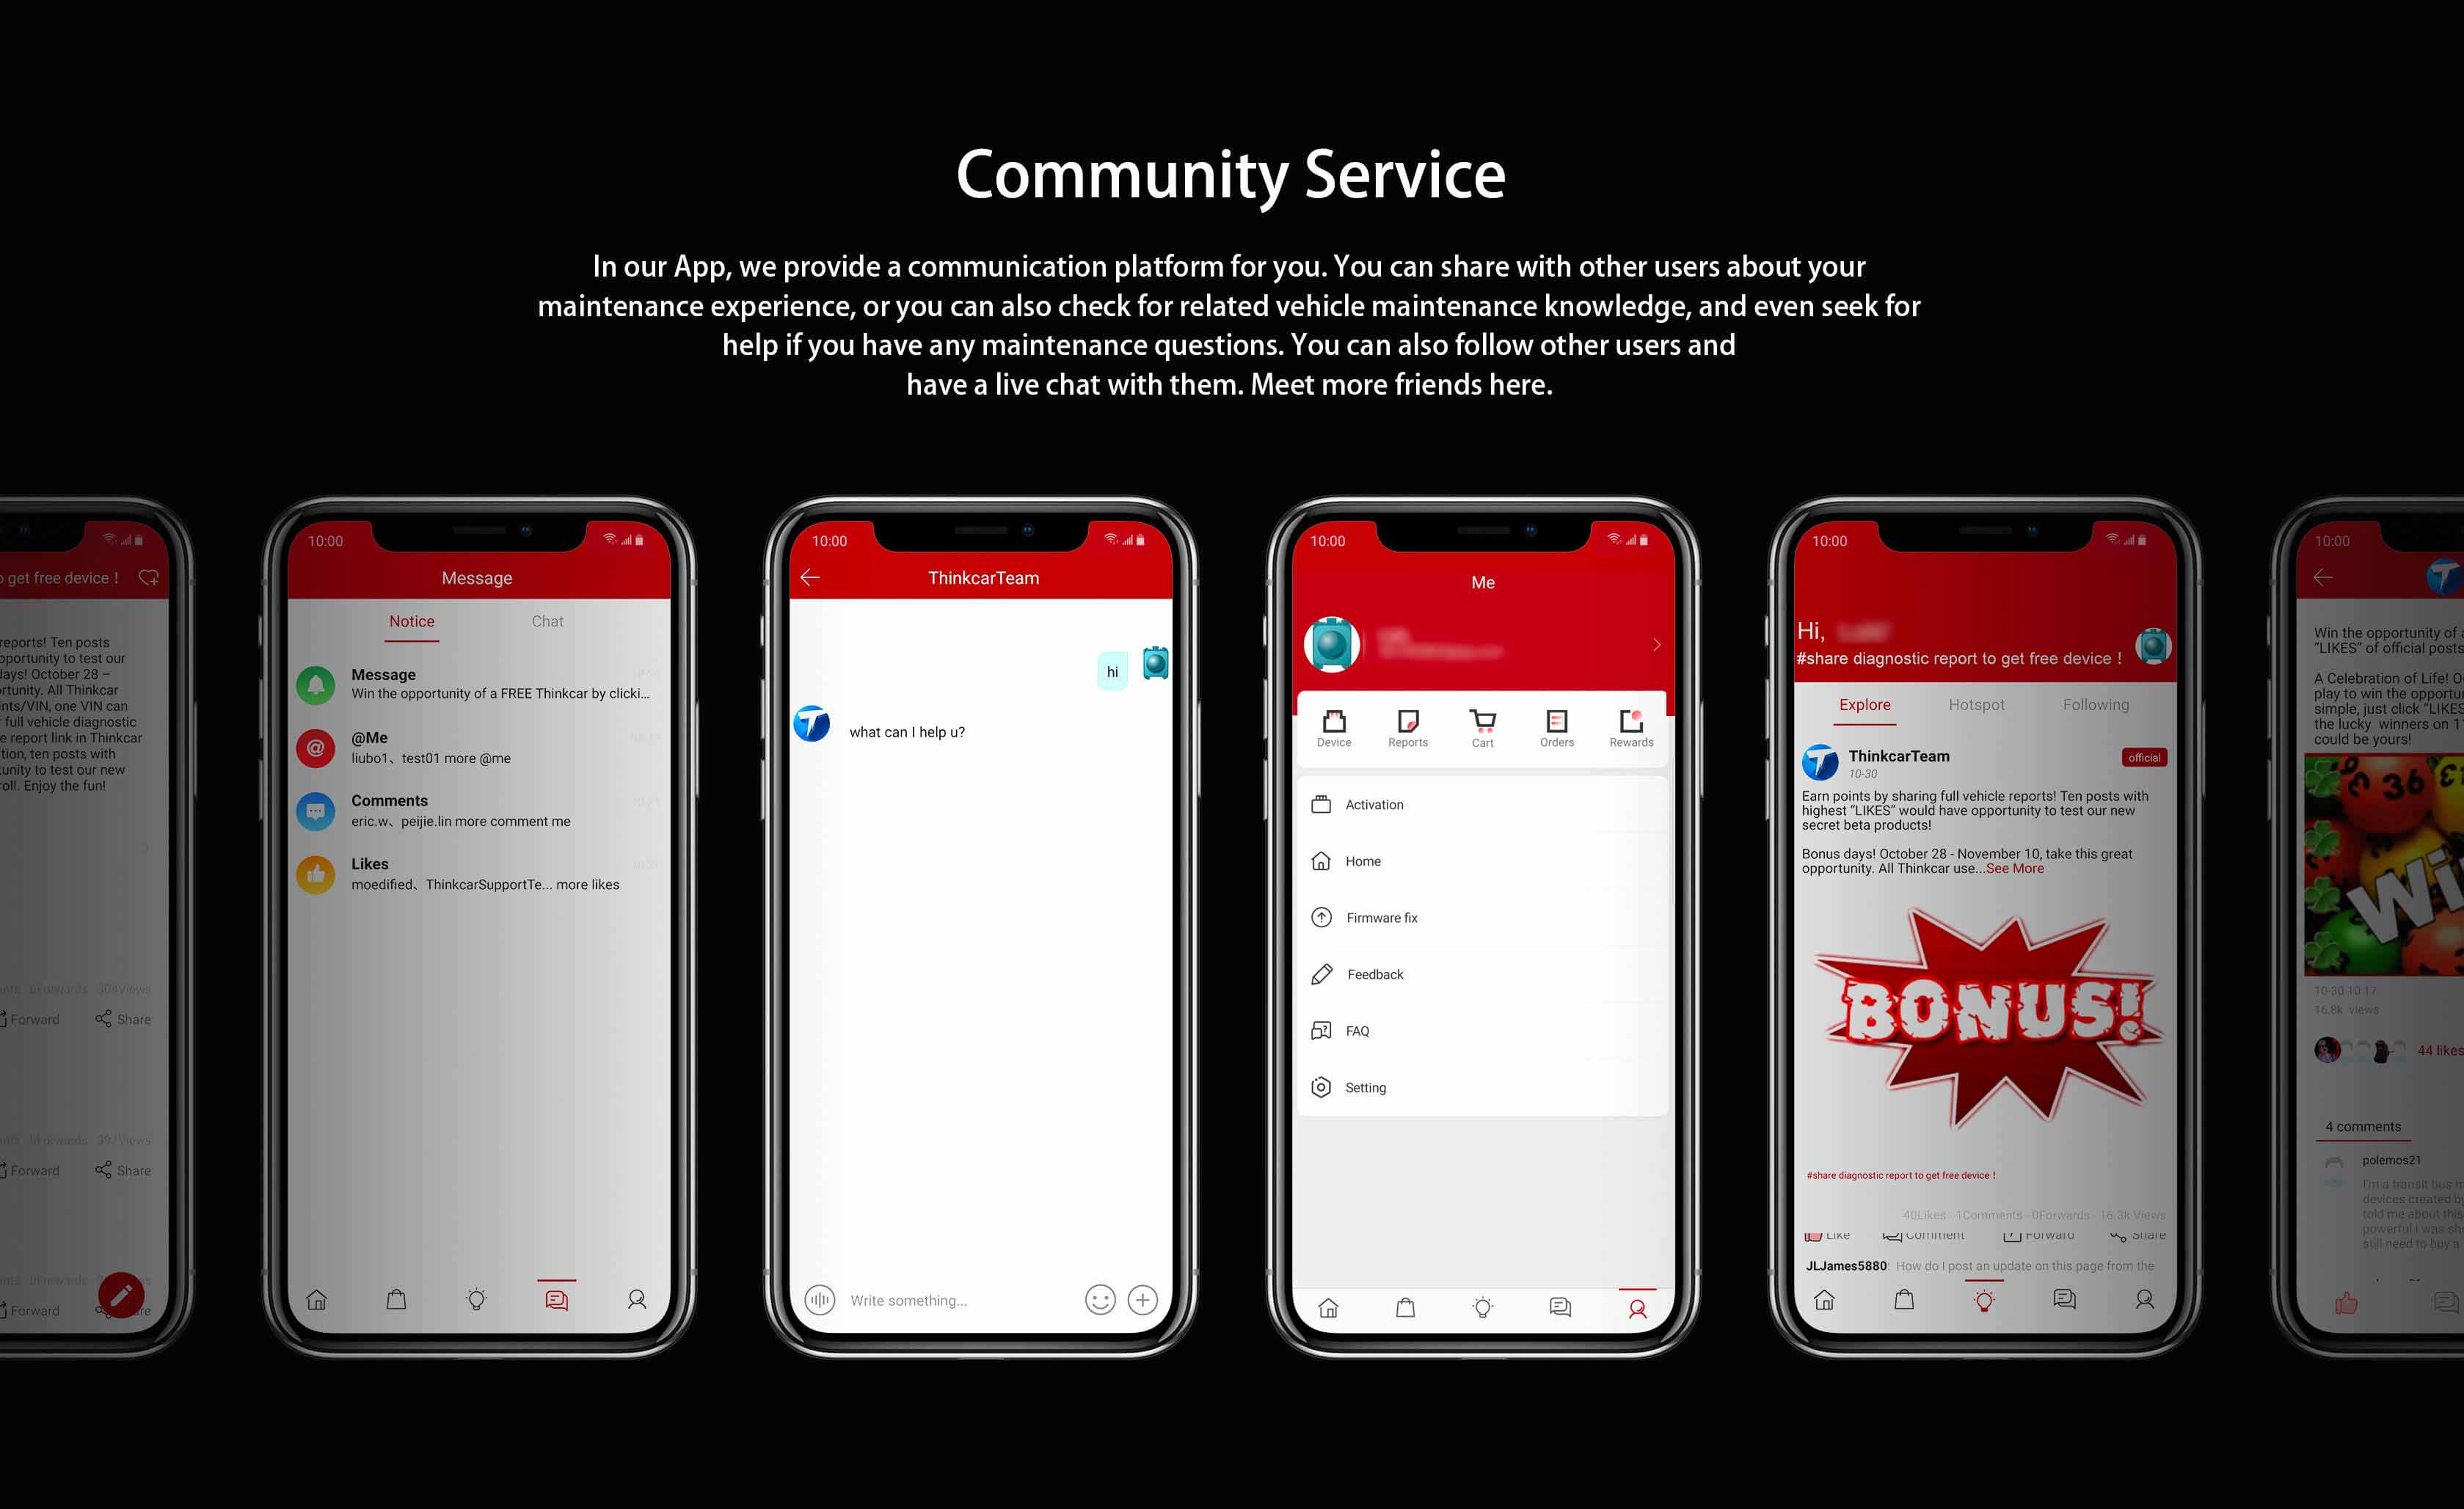 The Thinkdiag Community Service will enable users to talk to other users as a comunity to make sure you are never alone.